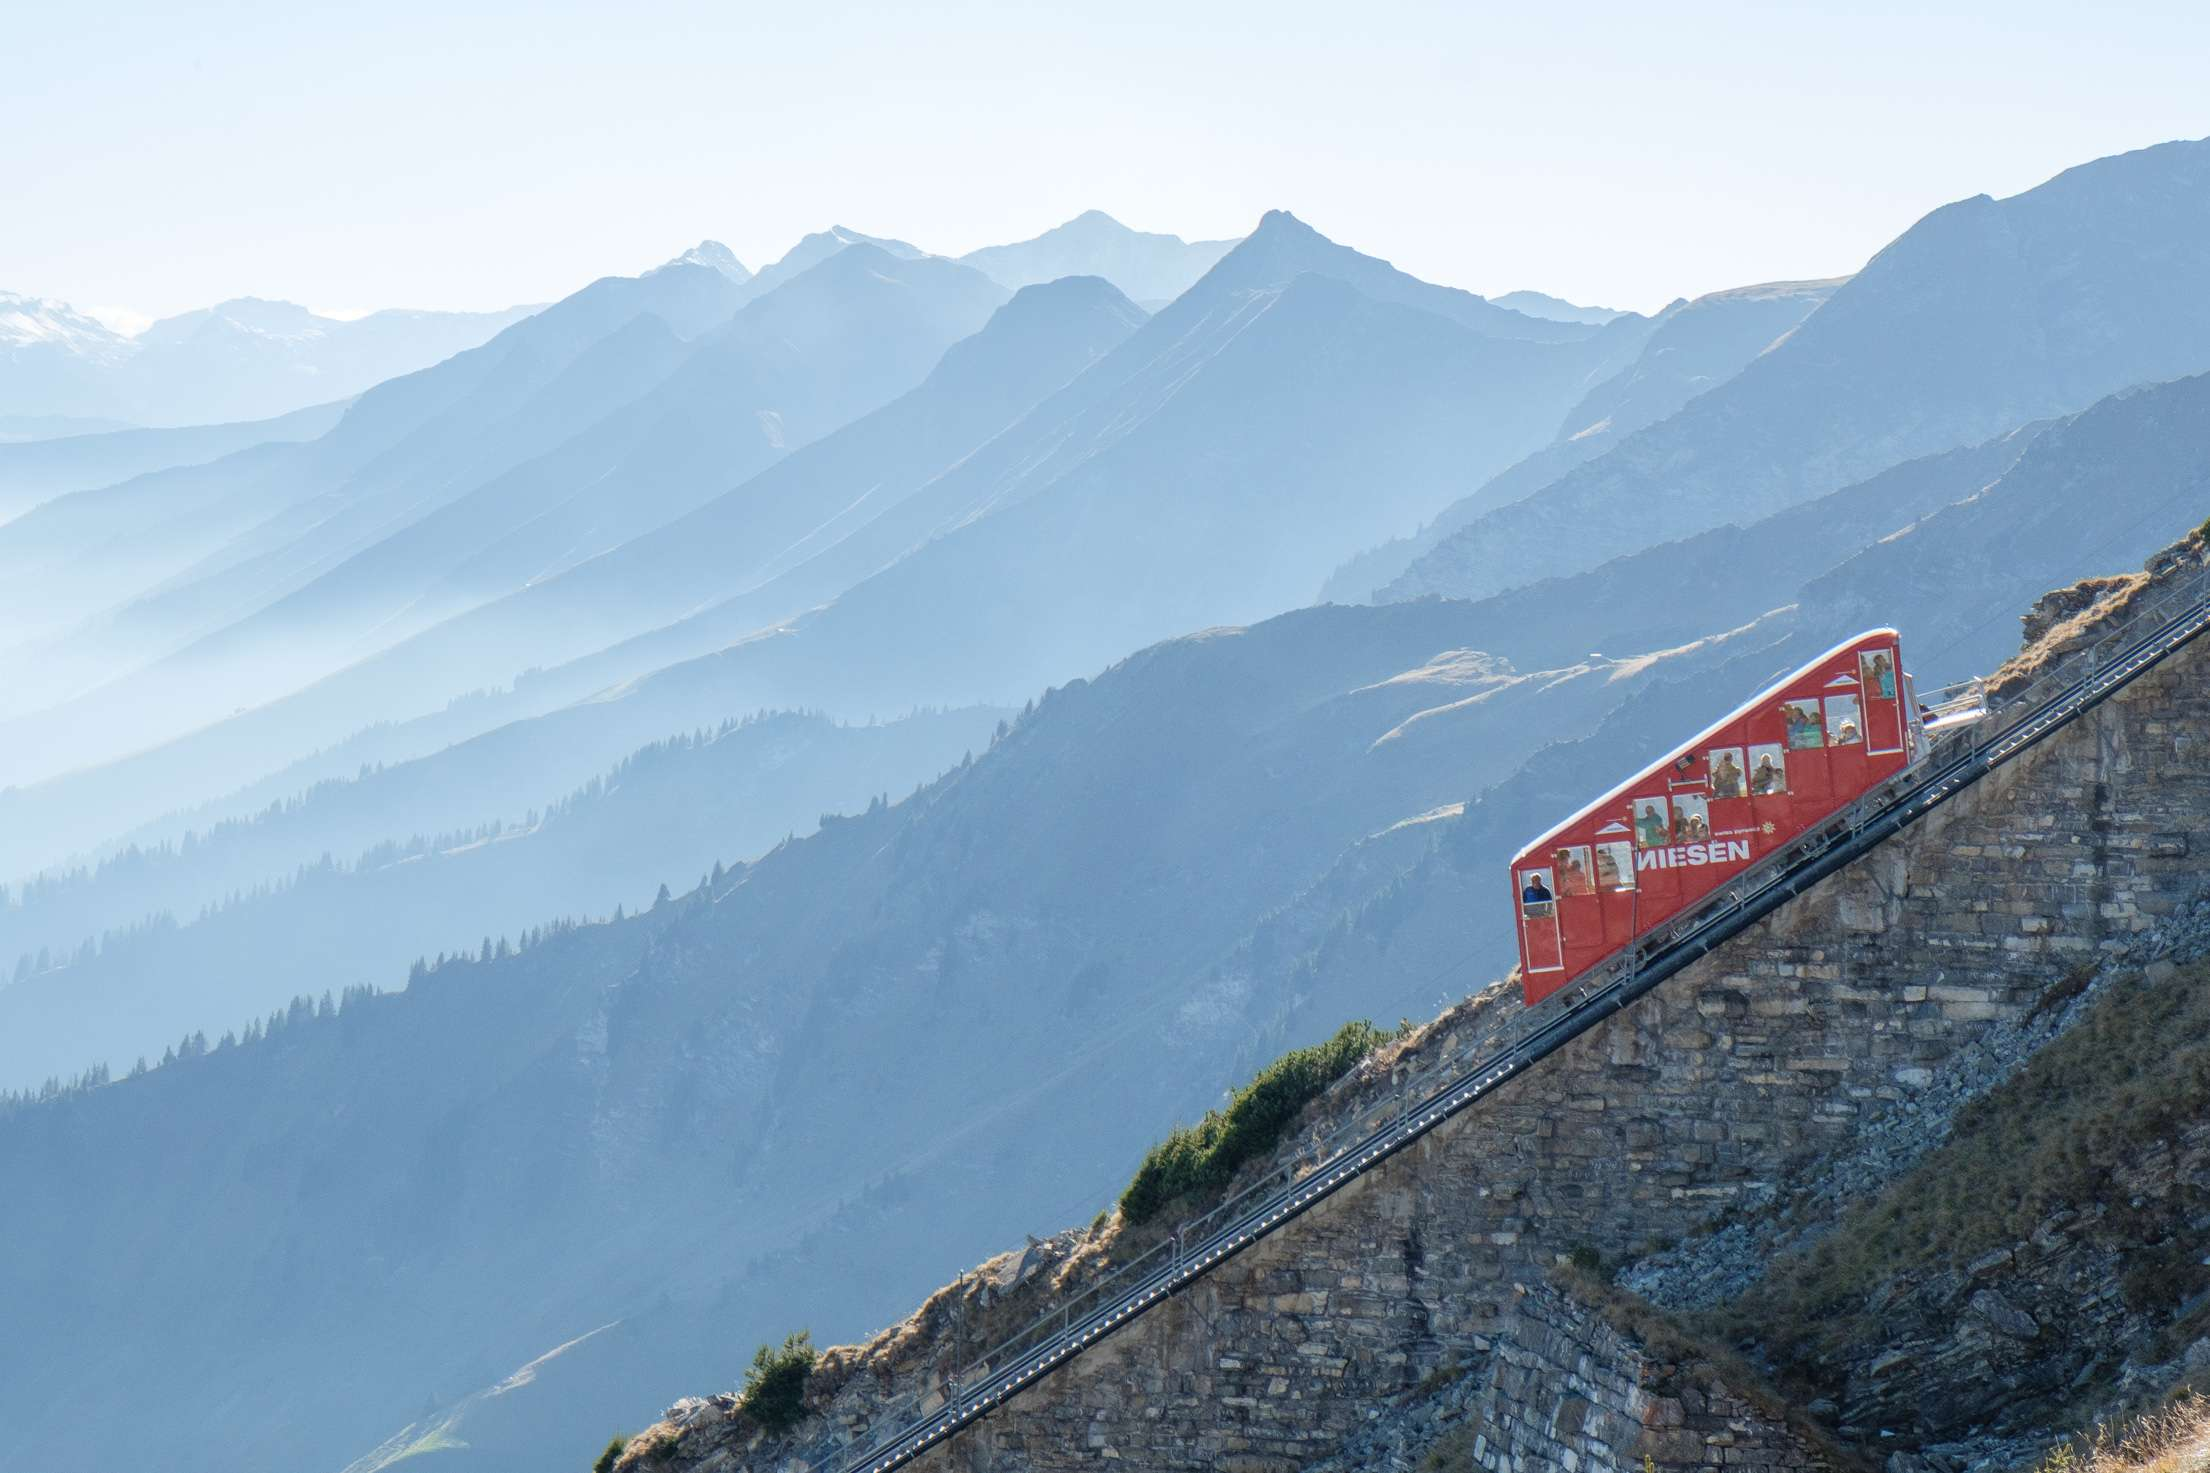 The Niesenbahn with mountain slopes in the background